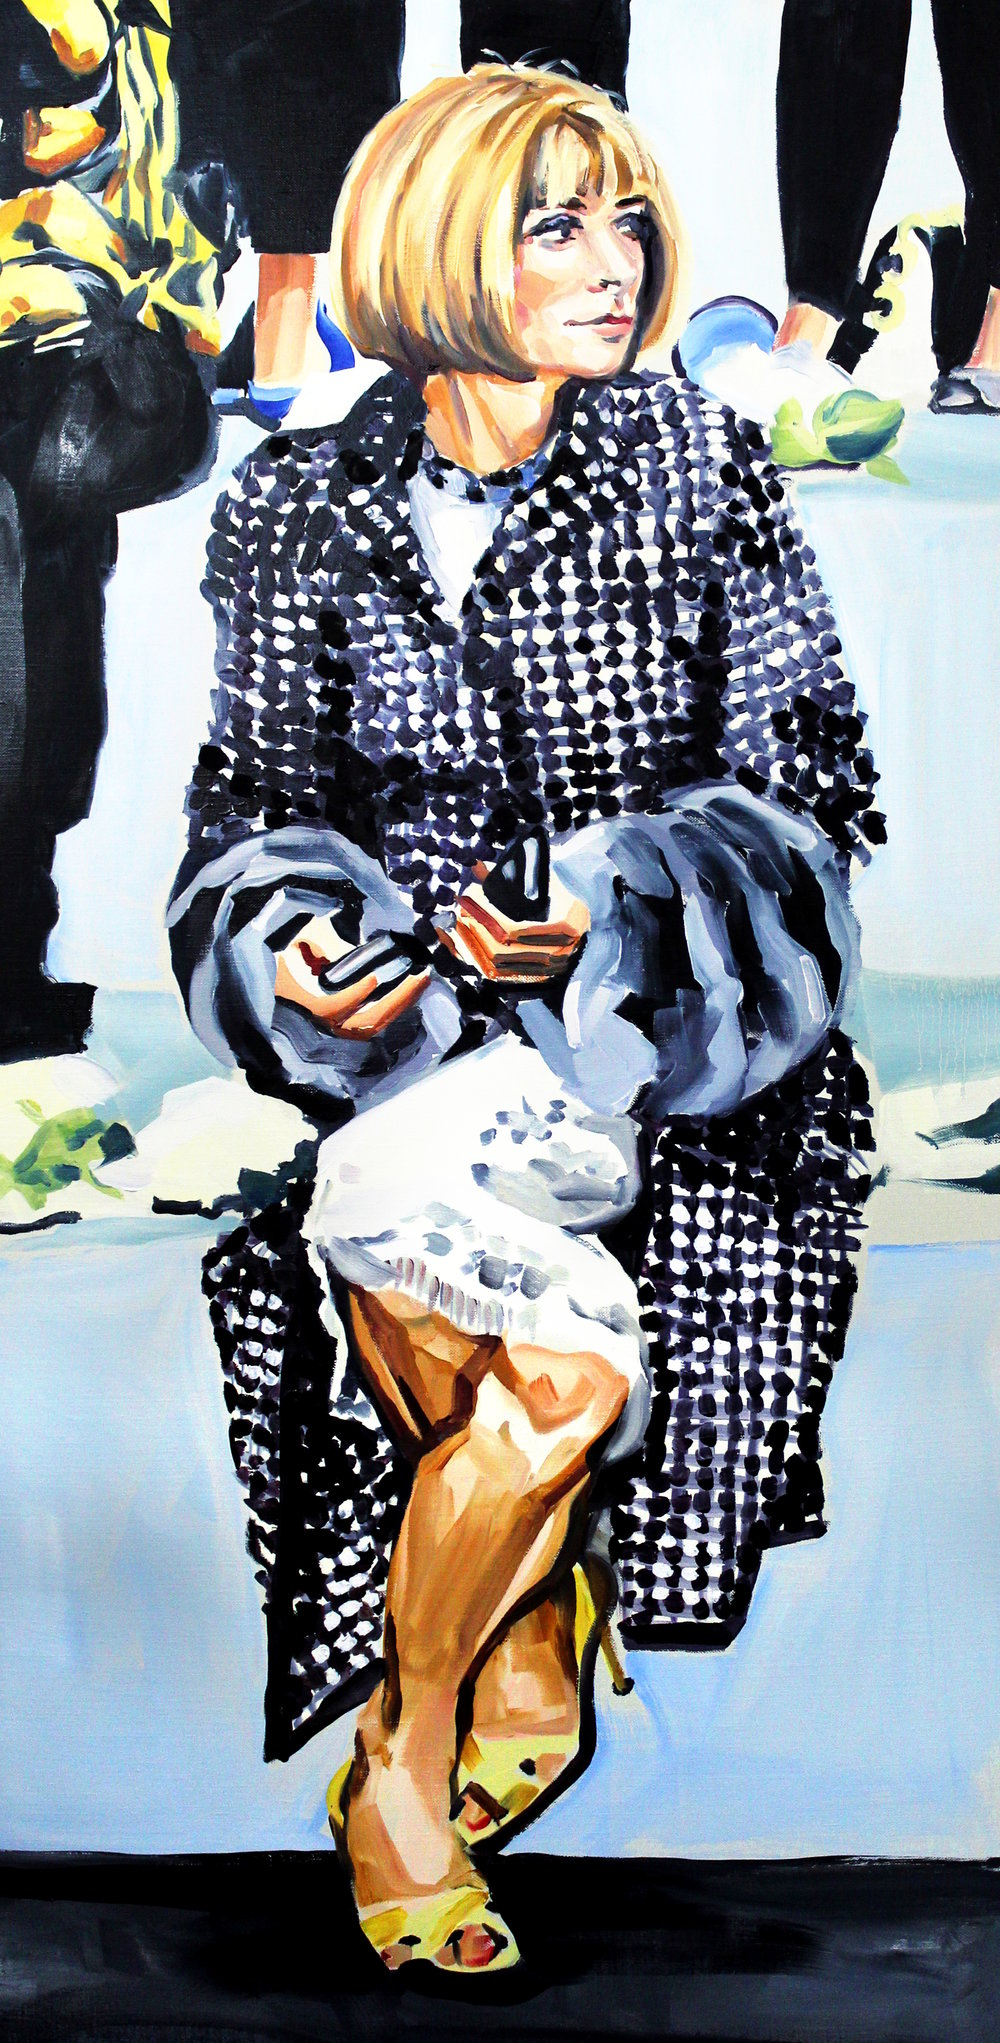 Laura Collins Anna Wintour Double Crossing Her Legs no. 2 oil on linen 24x48 2018.JPG